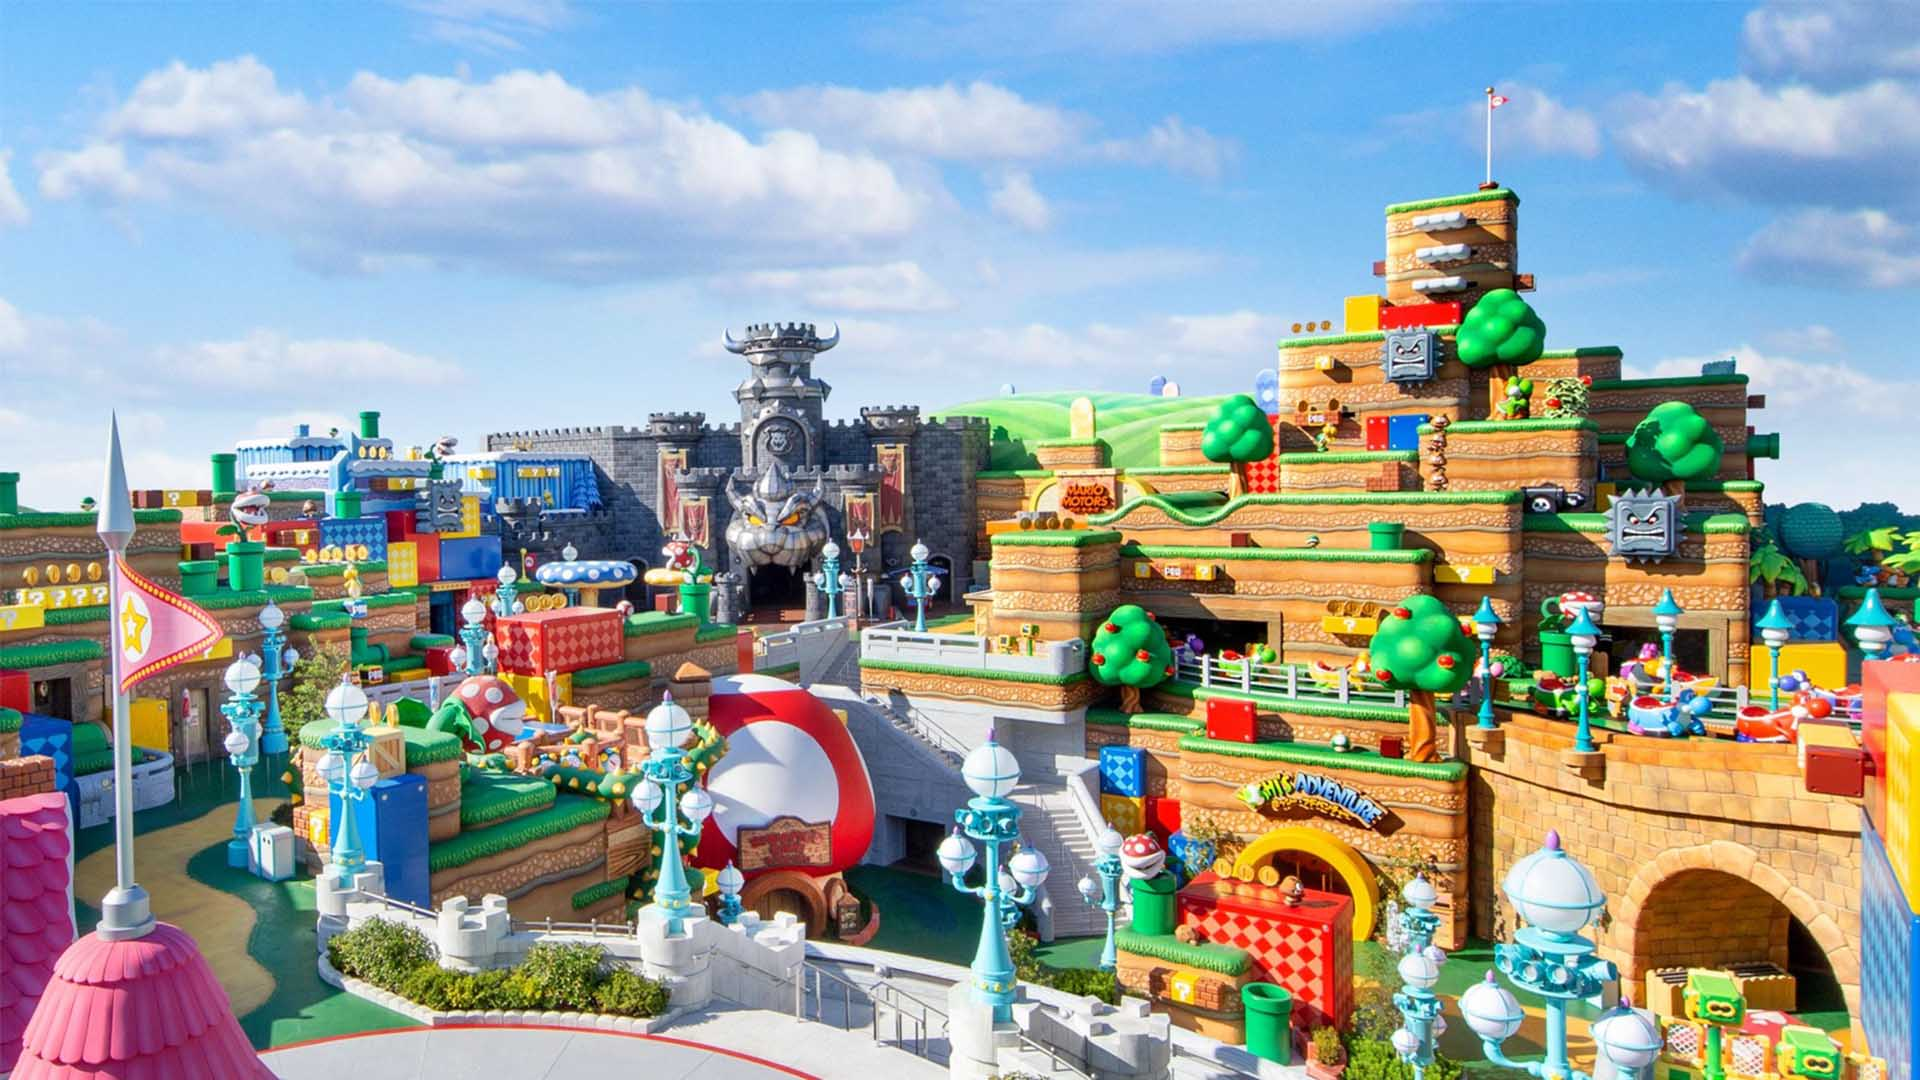 You Can Now Add Japan's Super Nintendo Theme Park to Your Post-Pandemic Travel List